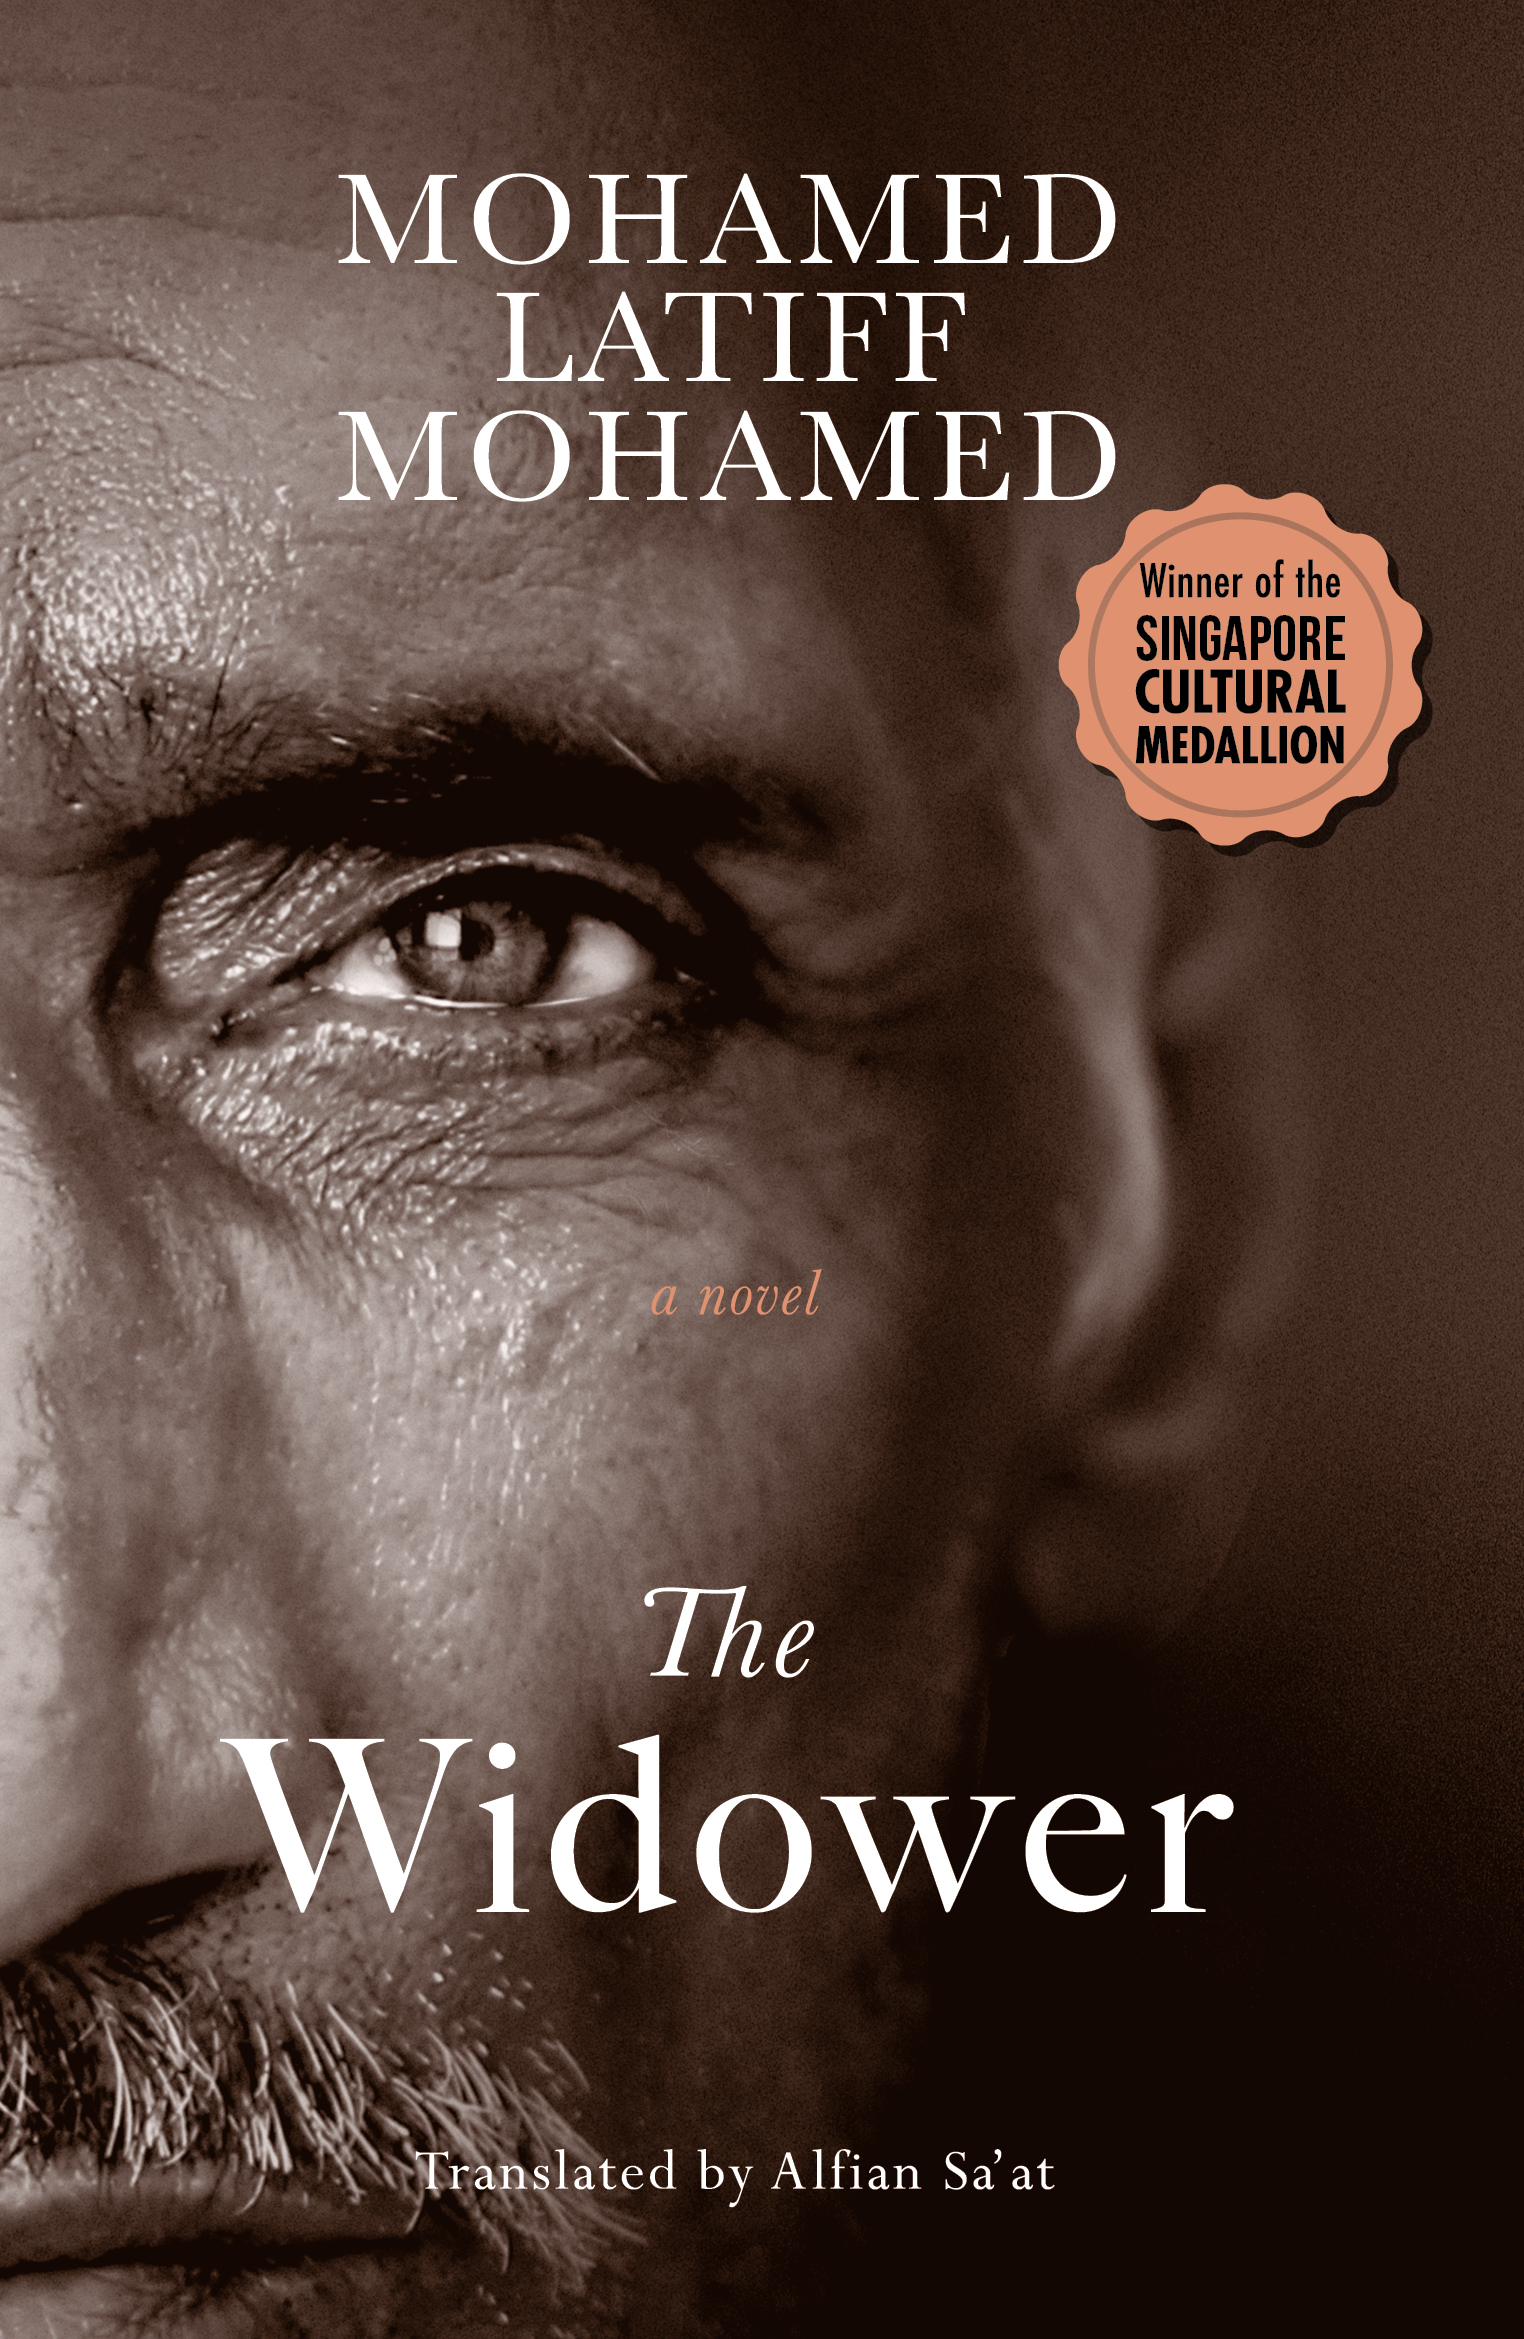 - THE WIDOWERMohamed Latiff Mohamedtranslated by Alfian Sa'atFormer political detainee and professor Pak Karman loses his wife in a car accident. The intensity of his mourning causes him to become untethered from his sanity. As reality, memory and fantasy become more and more blurred, he must come to terms with his past actions before his grief overwhelms him completely. Mohamed Latiff Mohamed's novel, hailed as a landmark in modernist Malay fiction, is an unsettling tale of psychic disintegration and obsessive love.£10General fiction978-1-91-209863-7January 2018ORDER THE BOOK HERE